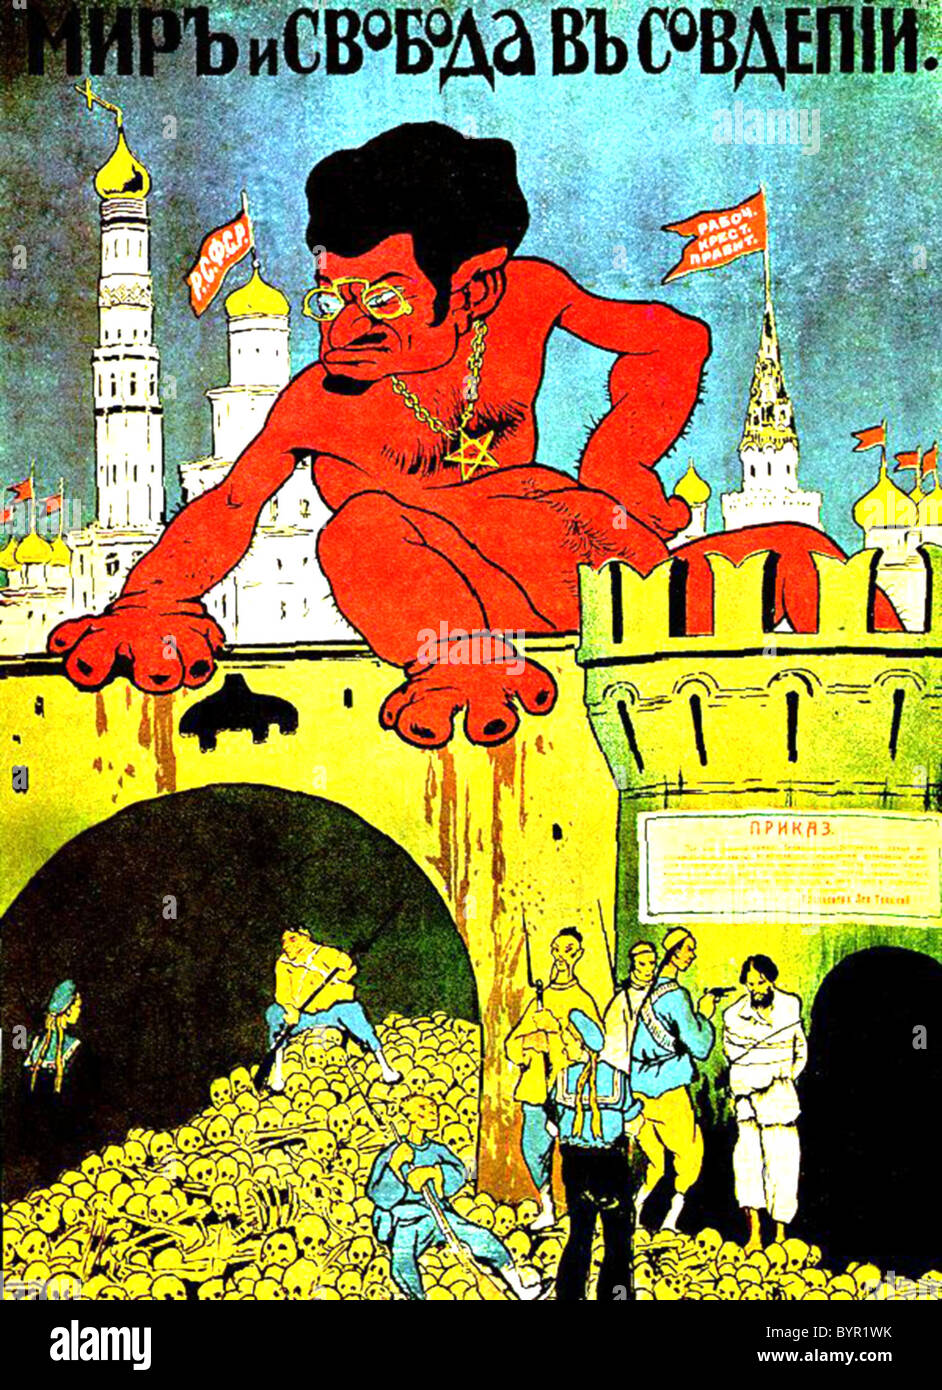 RUSSIAN CIVIL WAR propaganda poster issued by White Army shows Trotsky as red devil - See Description below - Stock Image